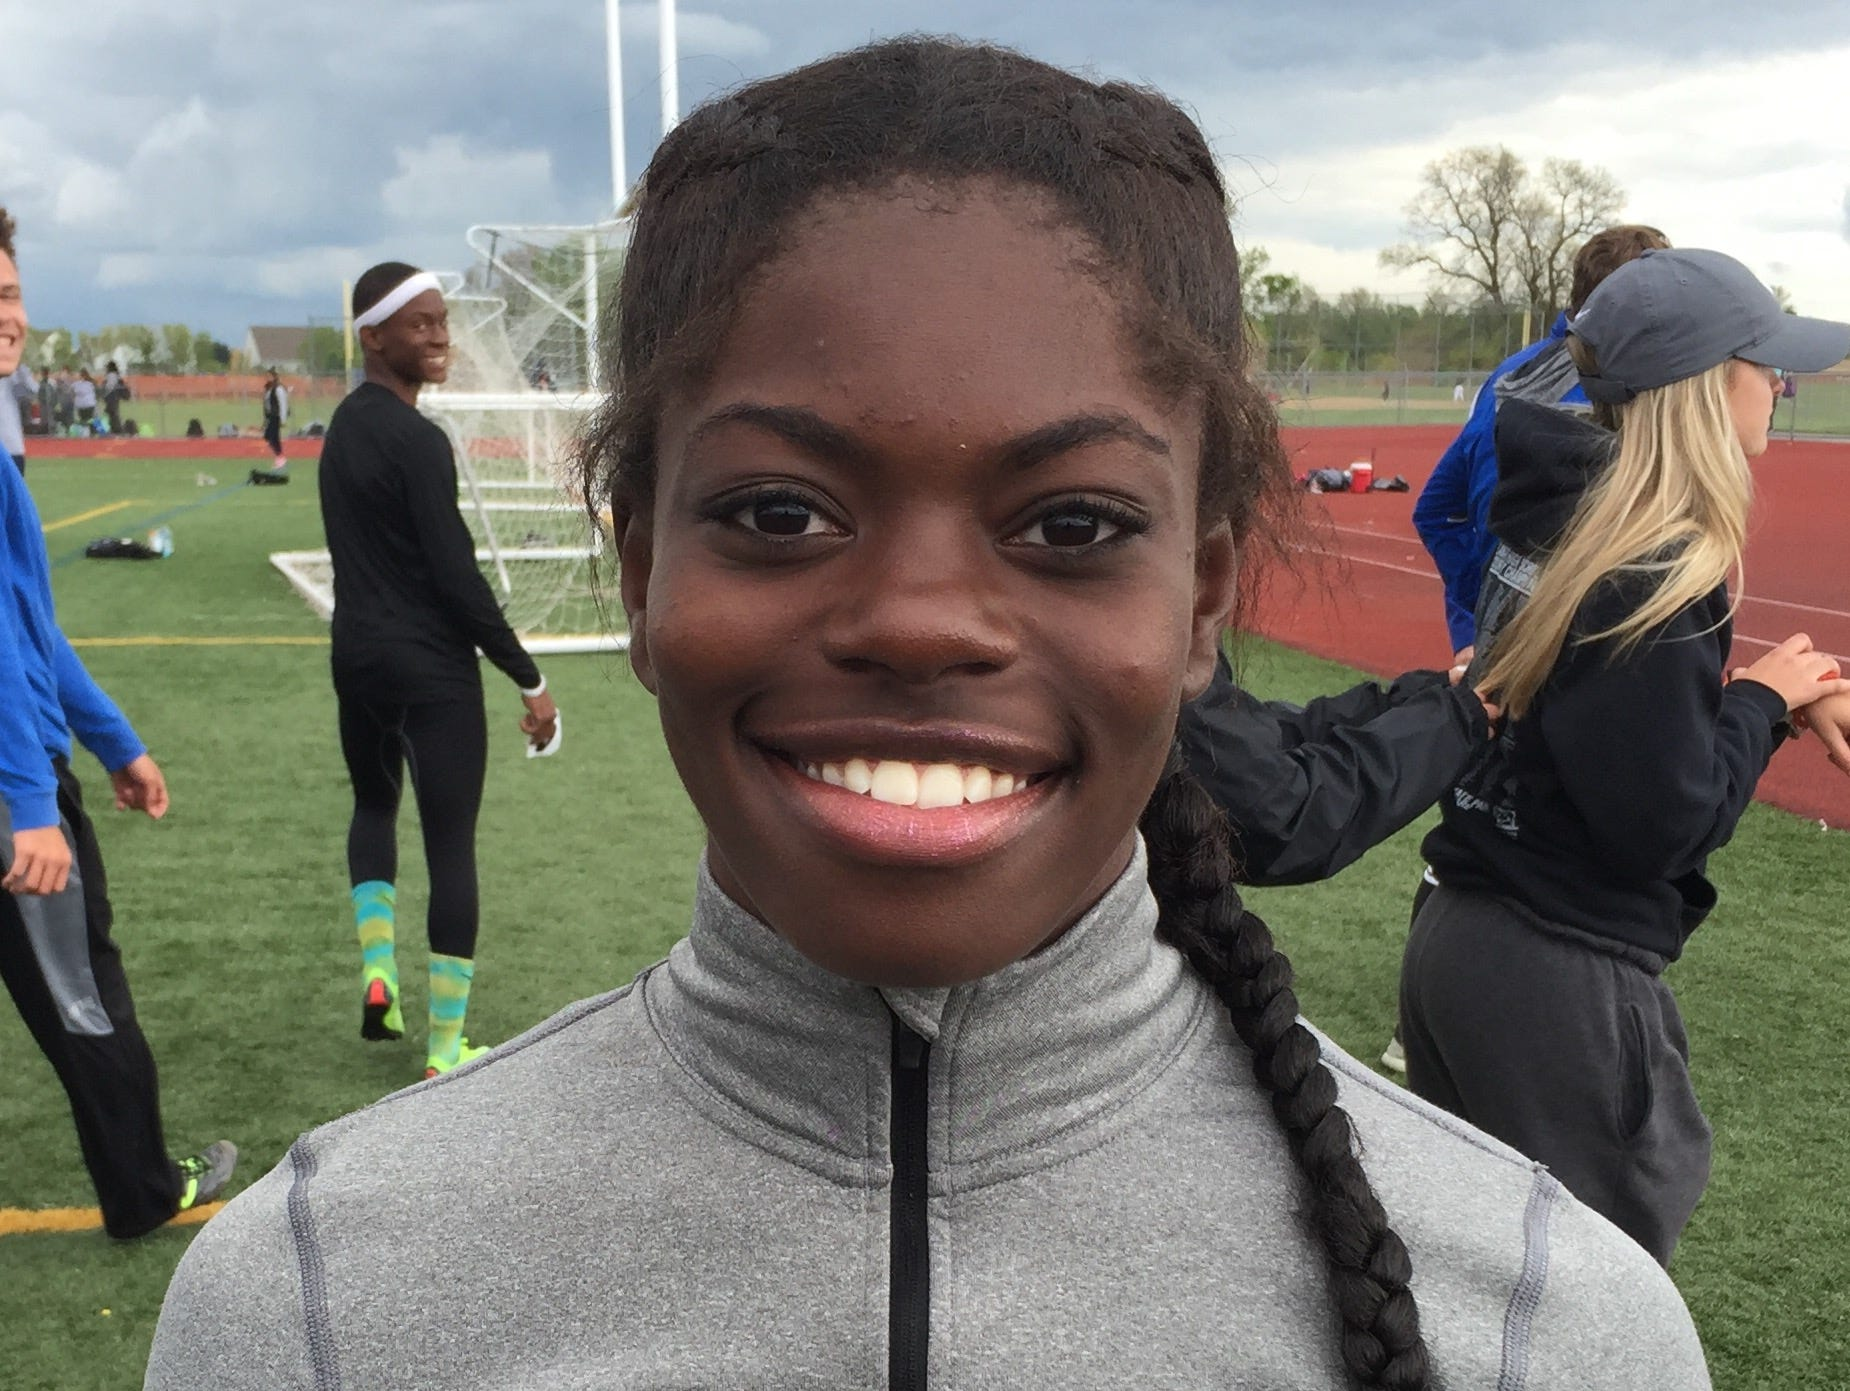 Middletown's Daija Lampkin lowered the girls 200-meter state record to 23.75 seconds on Saturday at the Blue Hen Conference track and field championships.